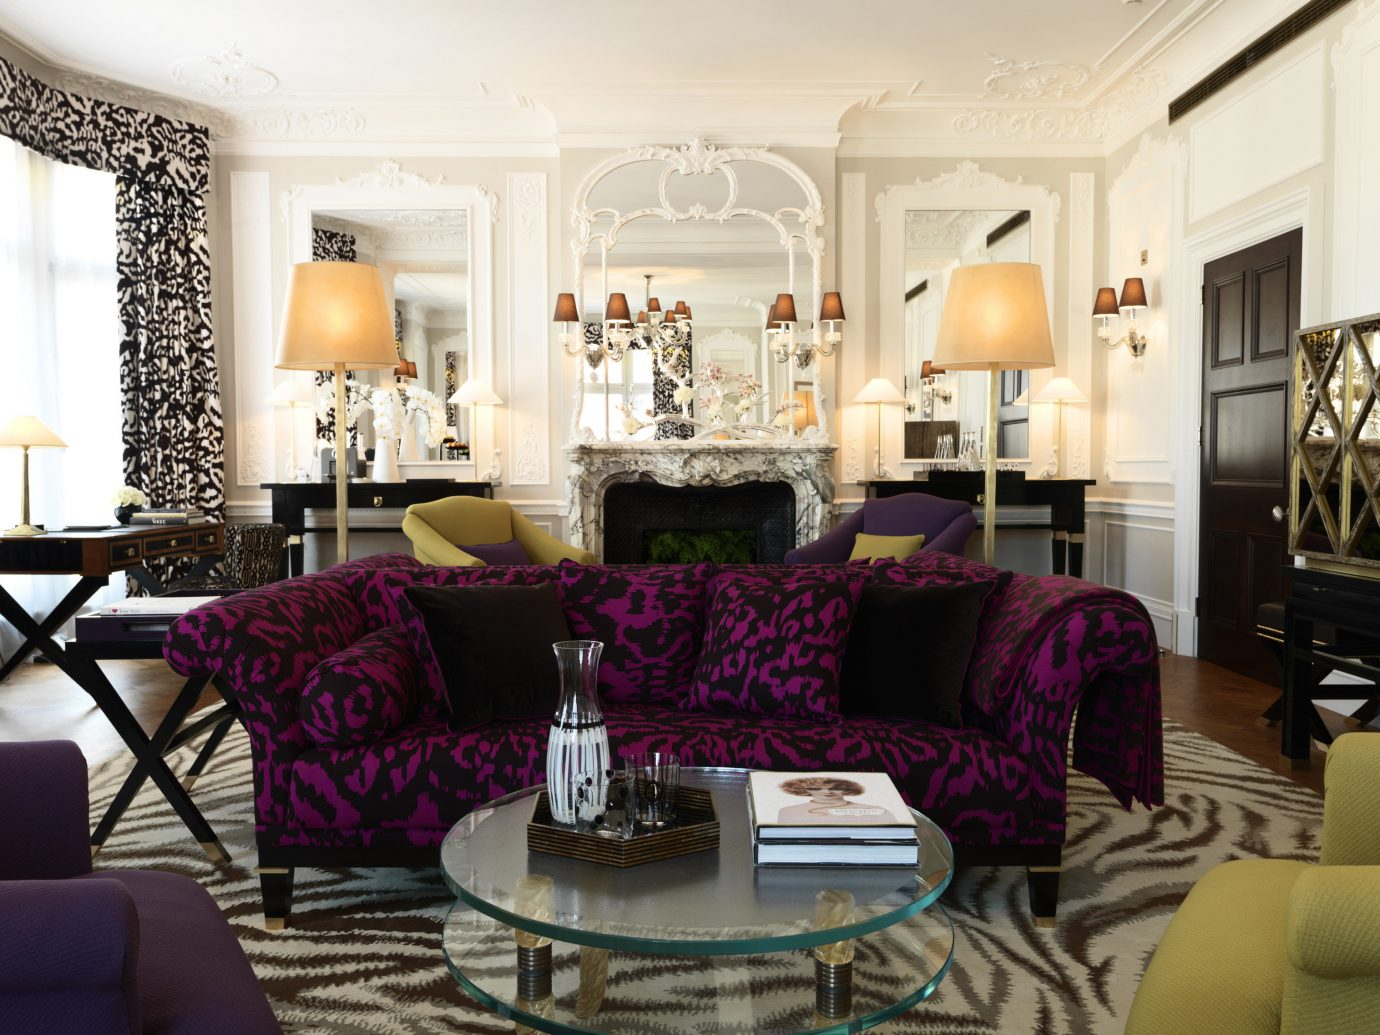 Hotels Travel Trends Trip Ideas indoor room Living sofa wall living room floor property chair dining room window furniture home estate interior design purple decorated real estate mansion area leather